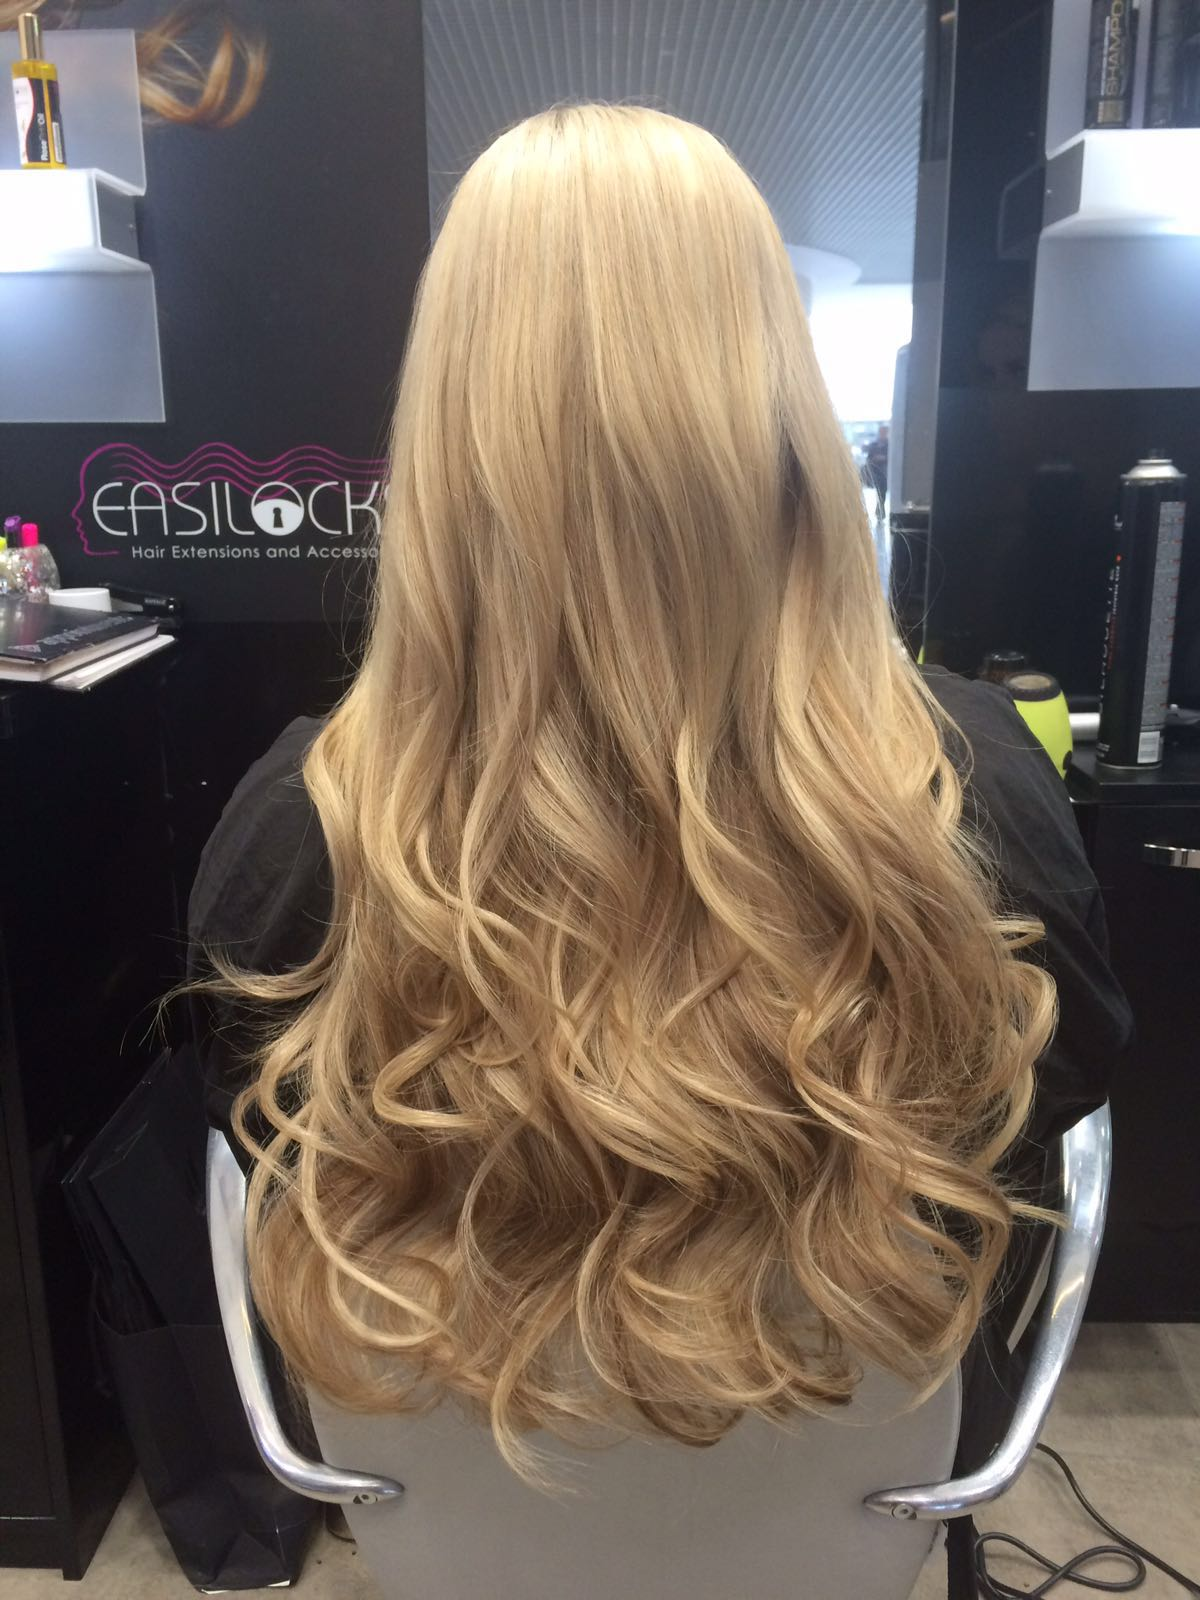 Easilocks The Final Review Peaches And Cream